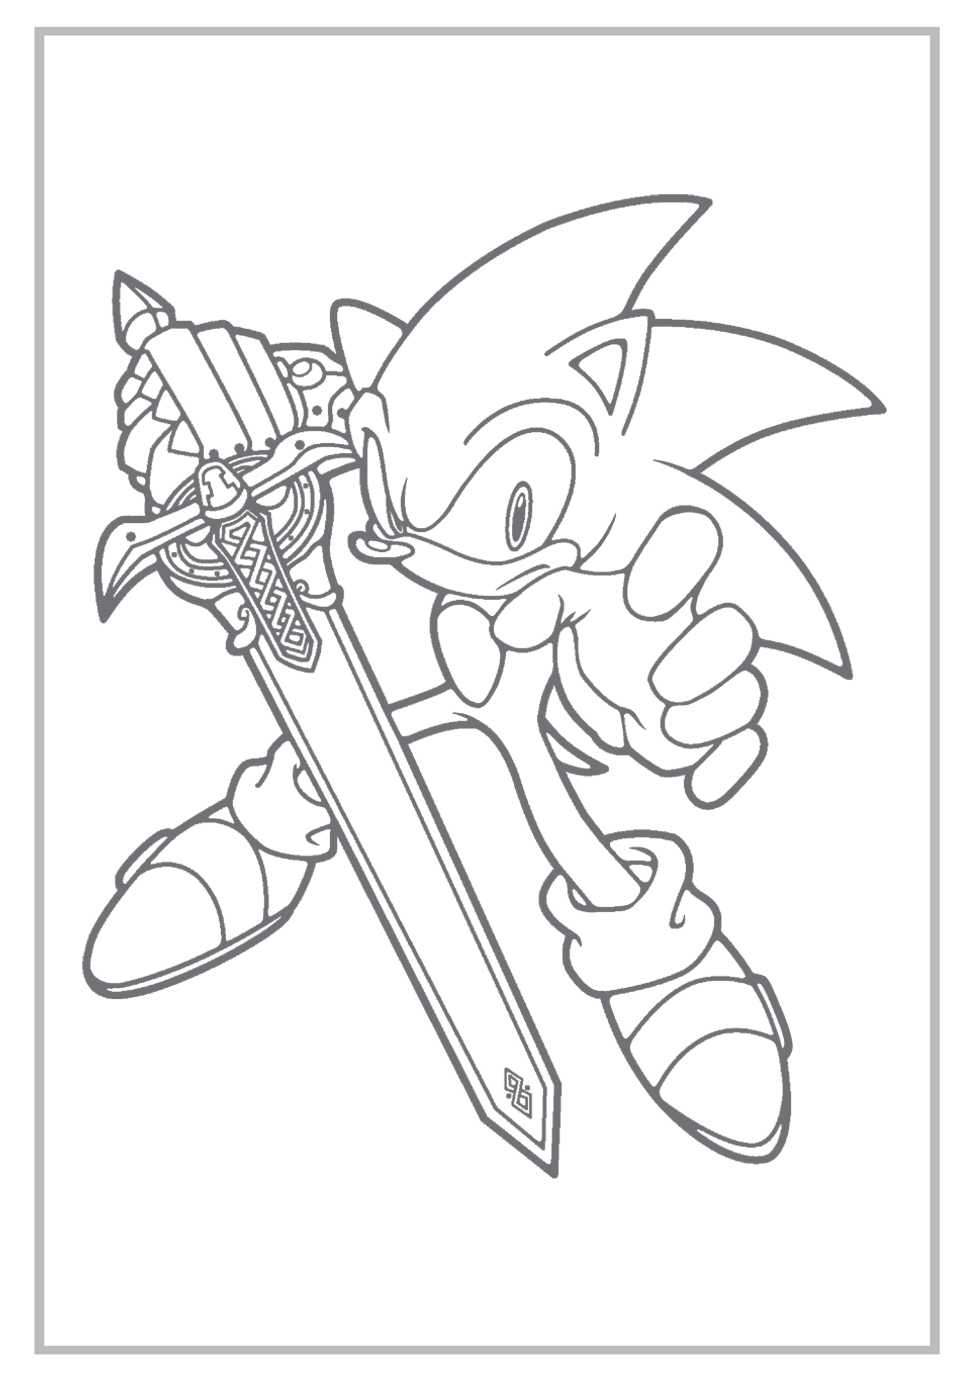 Sonic Coloring Pages | Sonic The Hedgehog Coloring Pages Free - Sonic Coloring Pages Free Printable